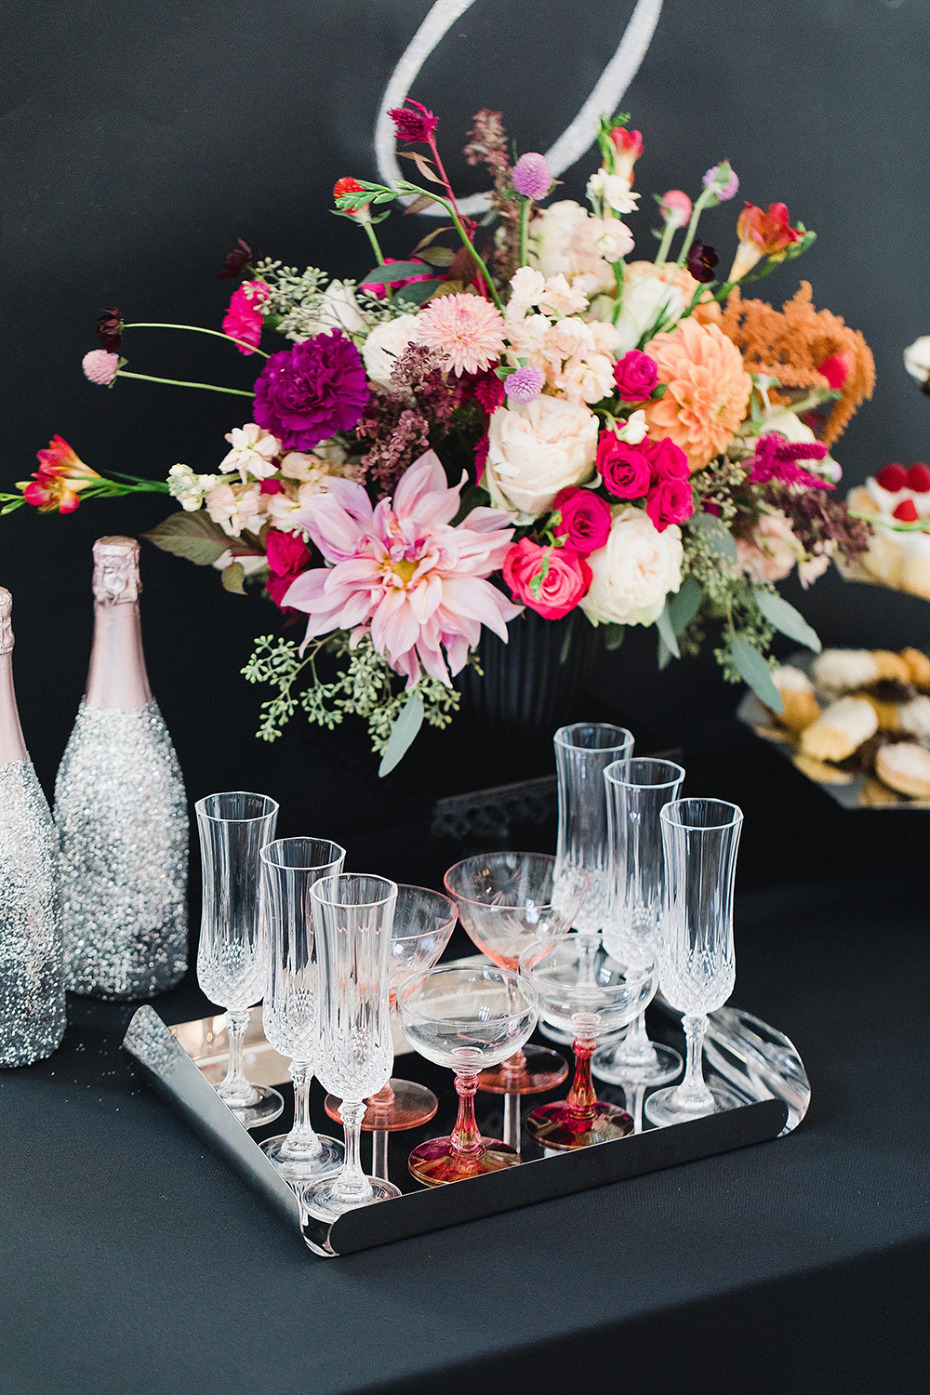 vintage Champagne glasses on a tray